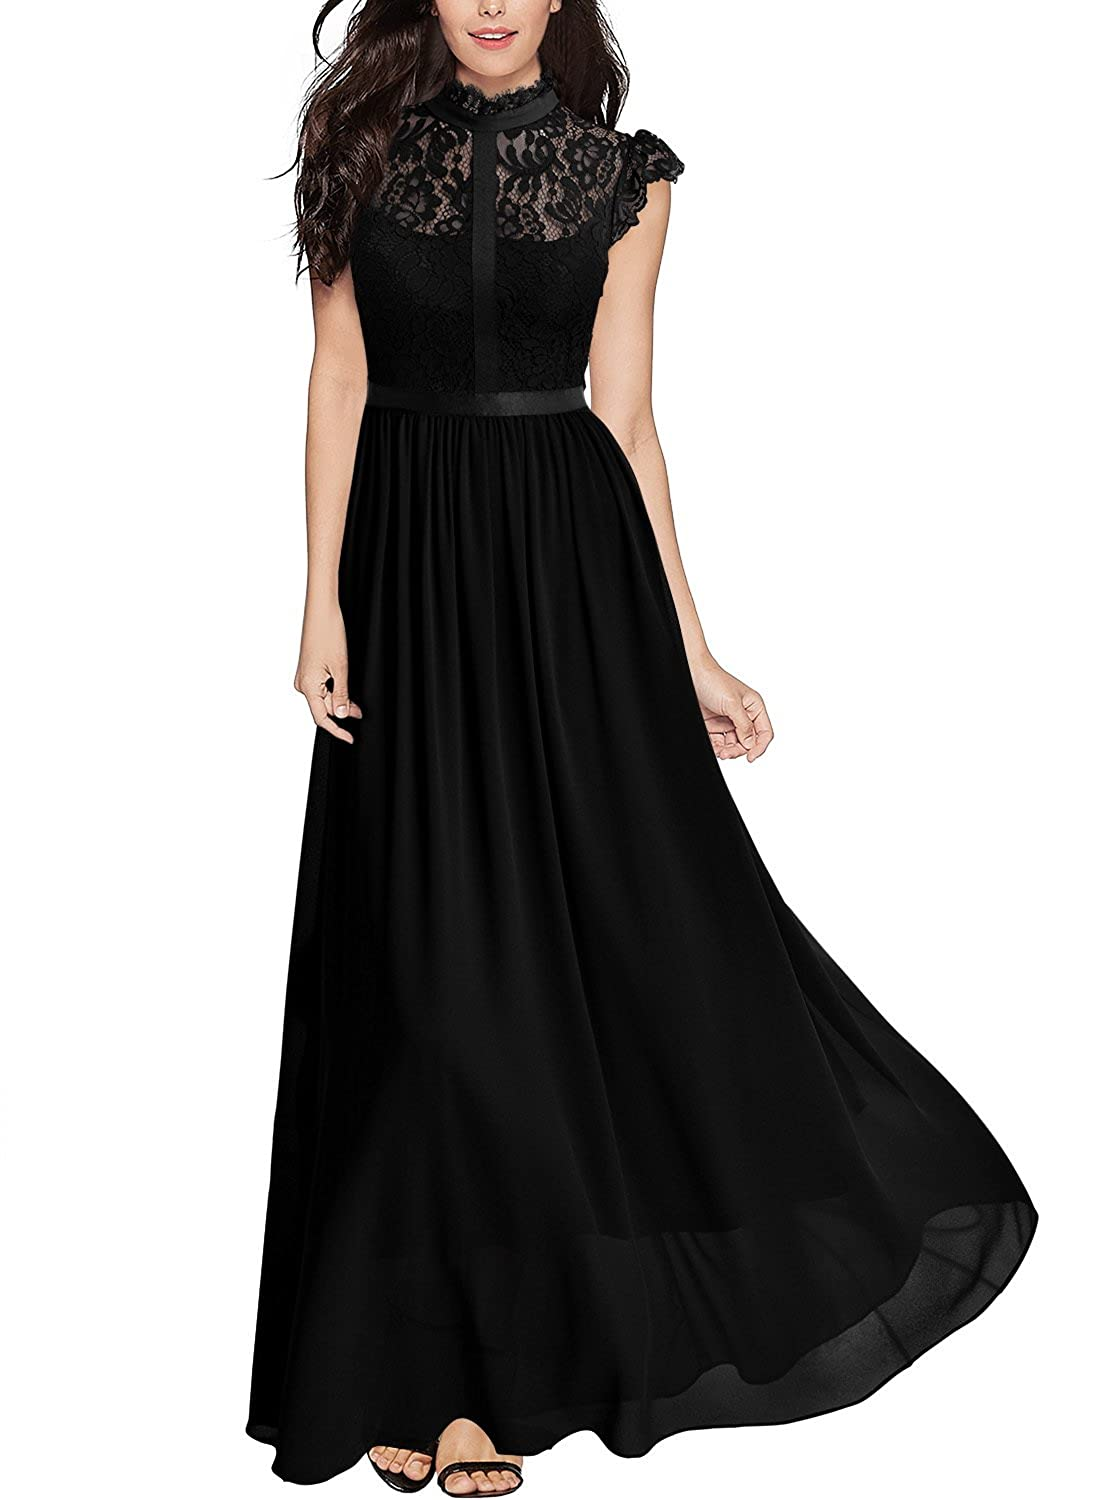 Bridesmaid dresses amazon womens formal floral lace cap sleeve evening party maxi dress ombrellifo Image collections